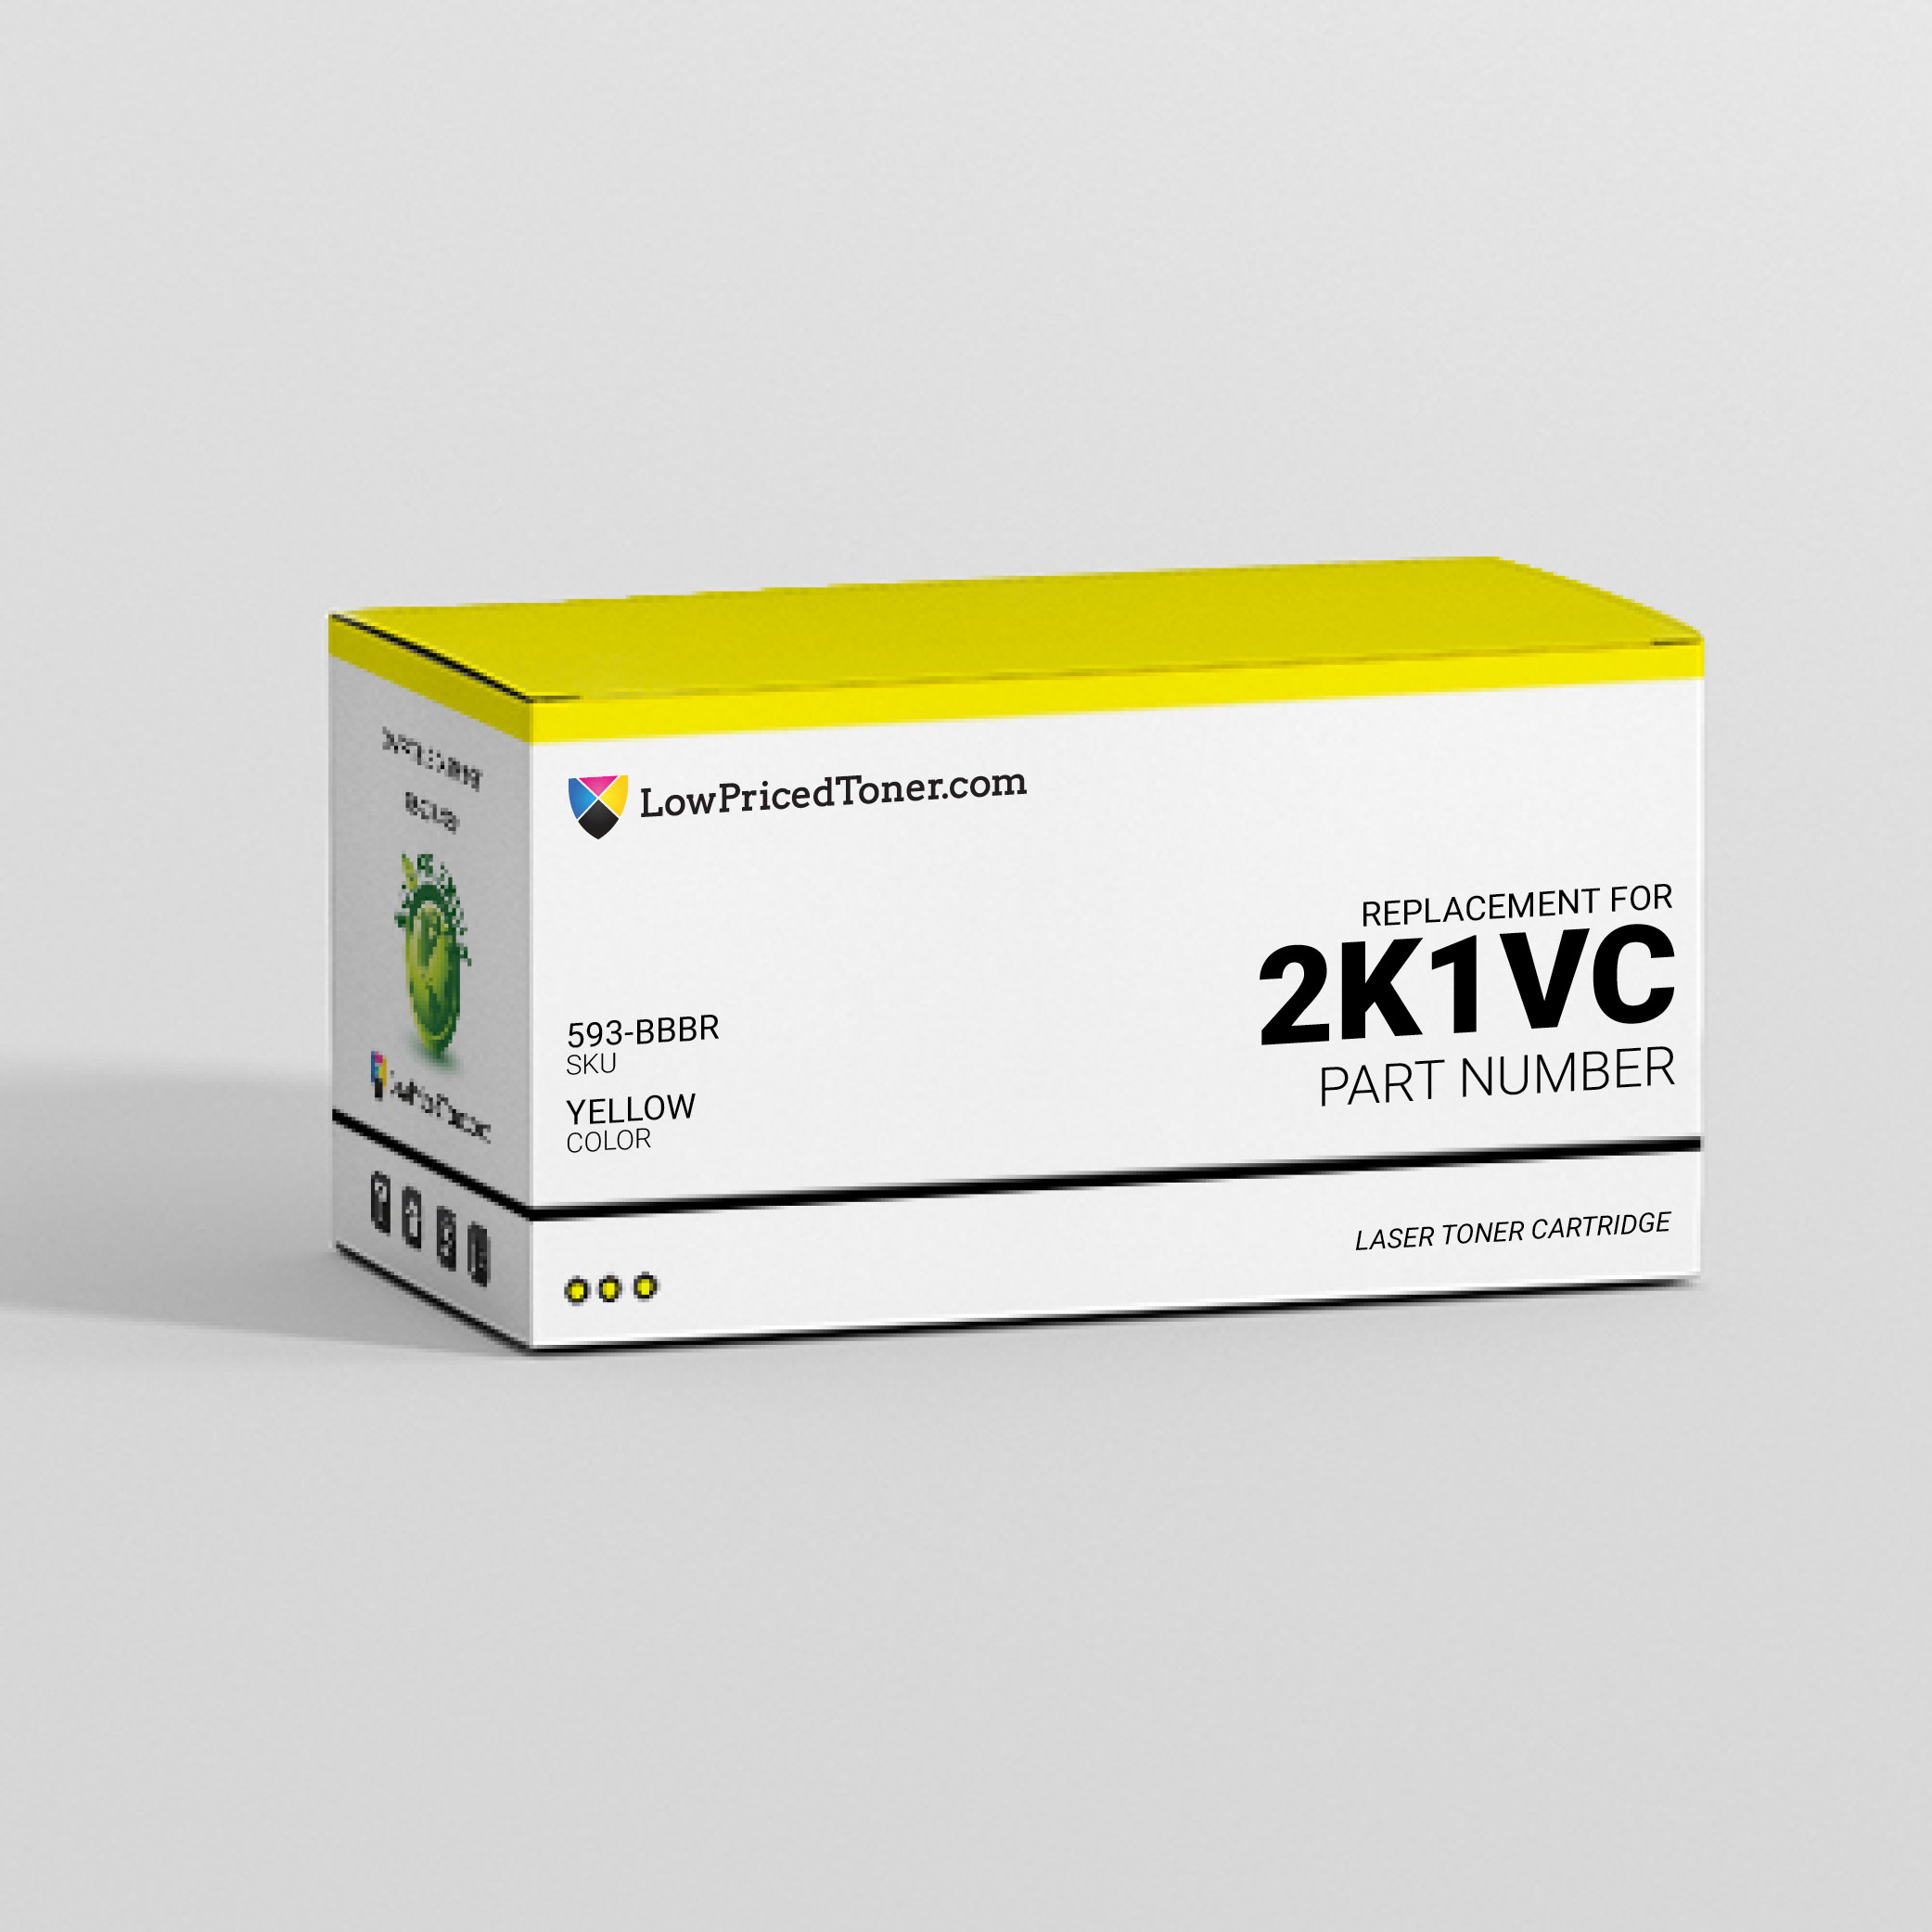 Dell 593-BBBR 2K1VC Compatible Yellow Laser Toner Cartridge